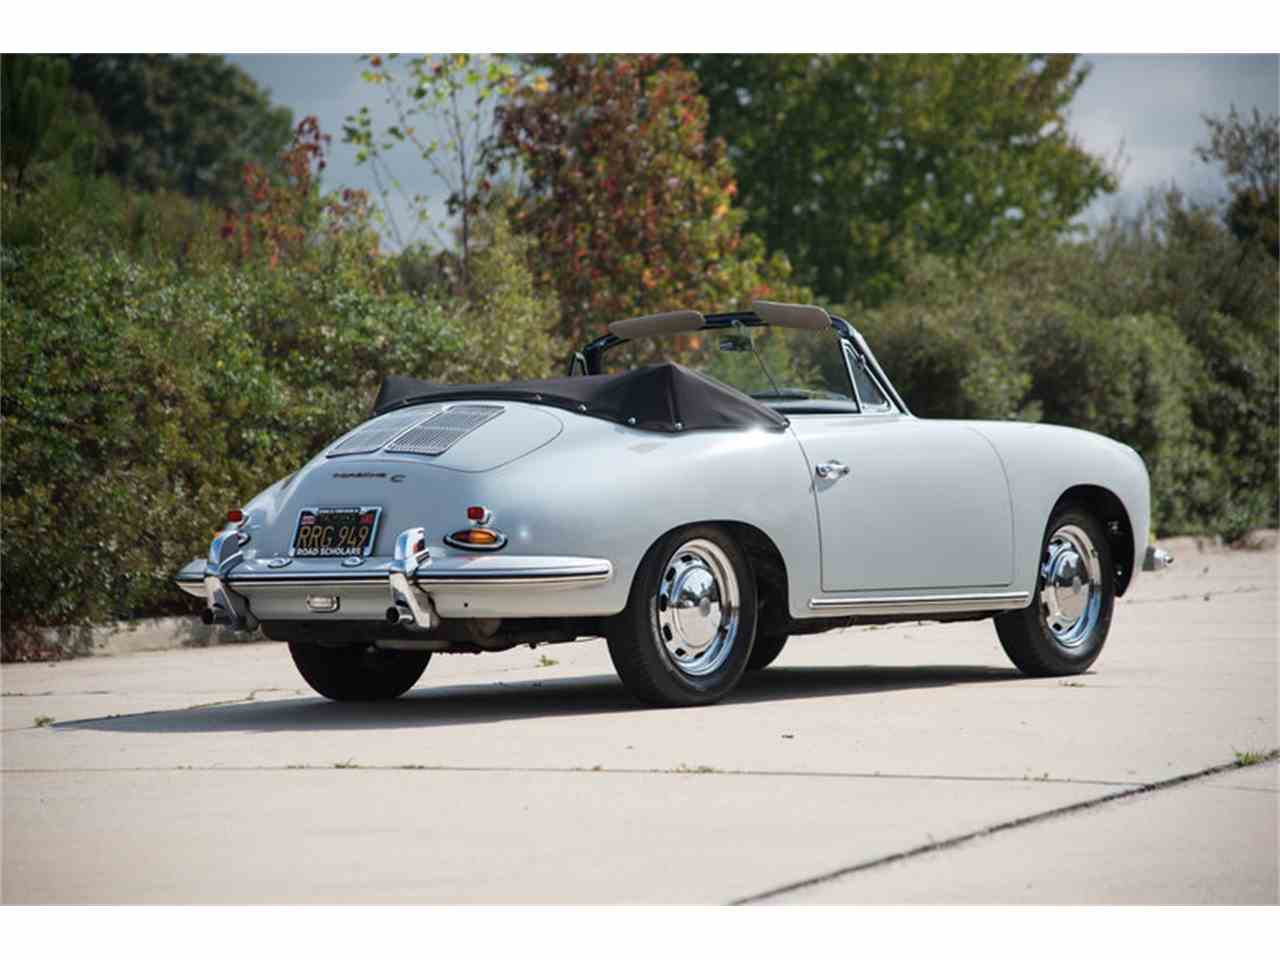 Large Picture of Classic 1965 Porsche 356C - $224,800.00 - IWJW